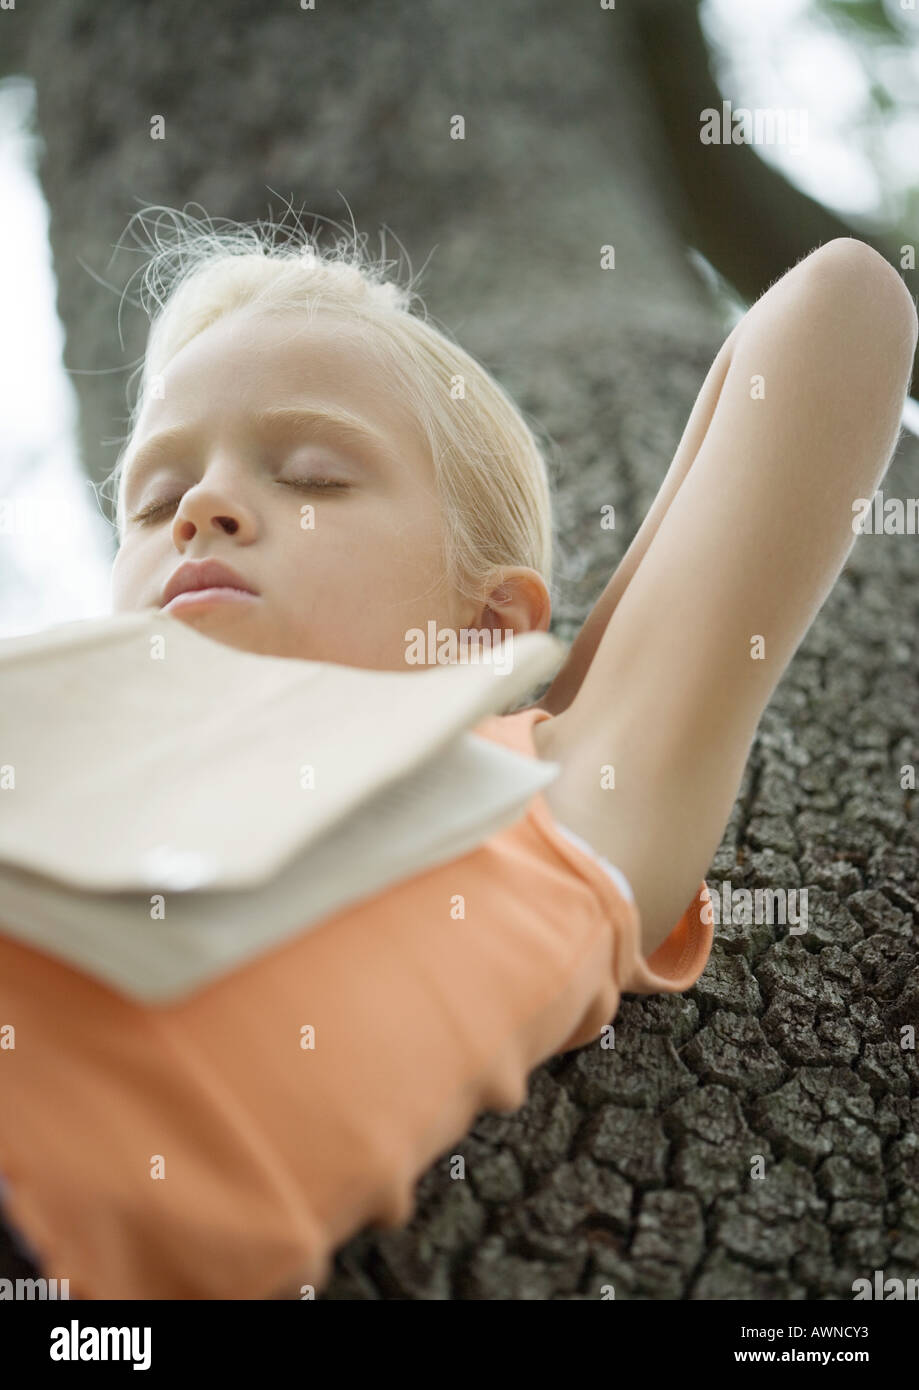 Girl in tree sleeping with book on chest Stock Photo